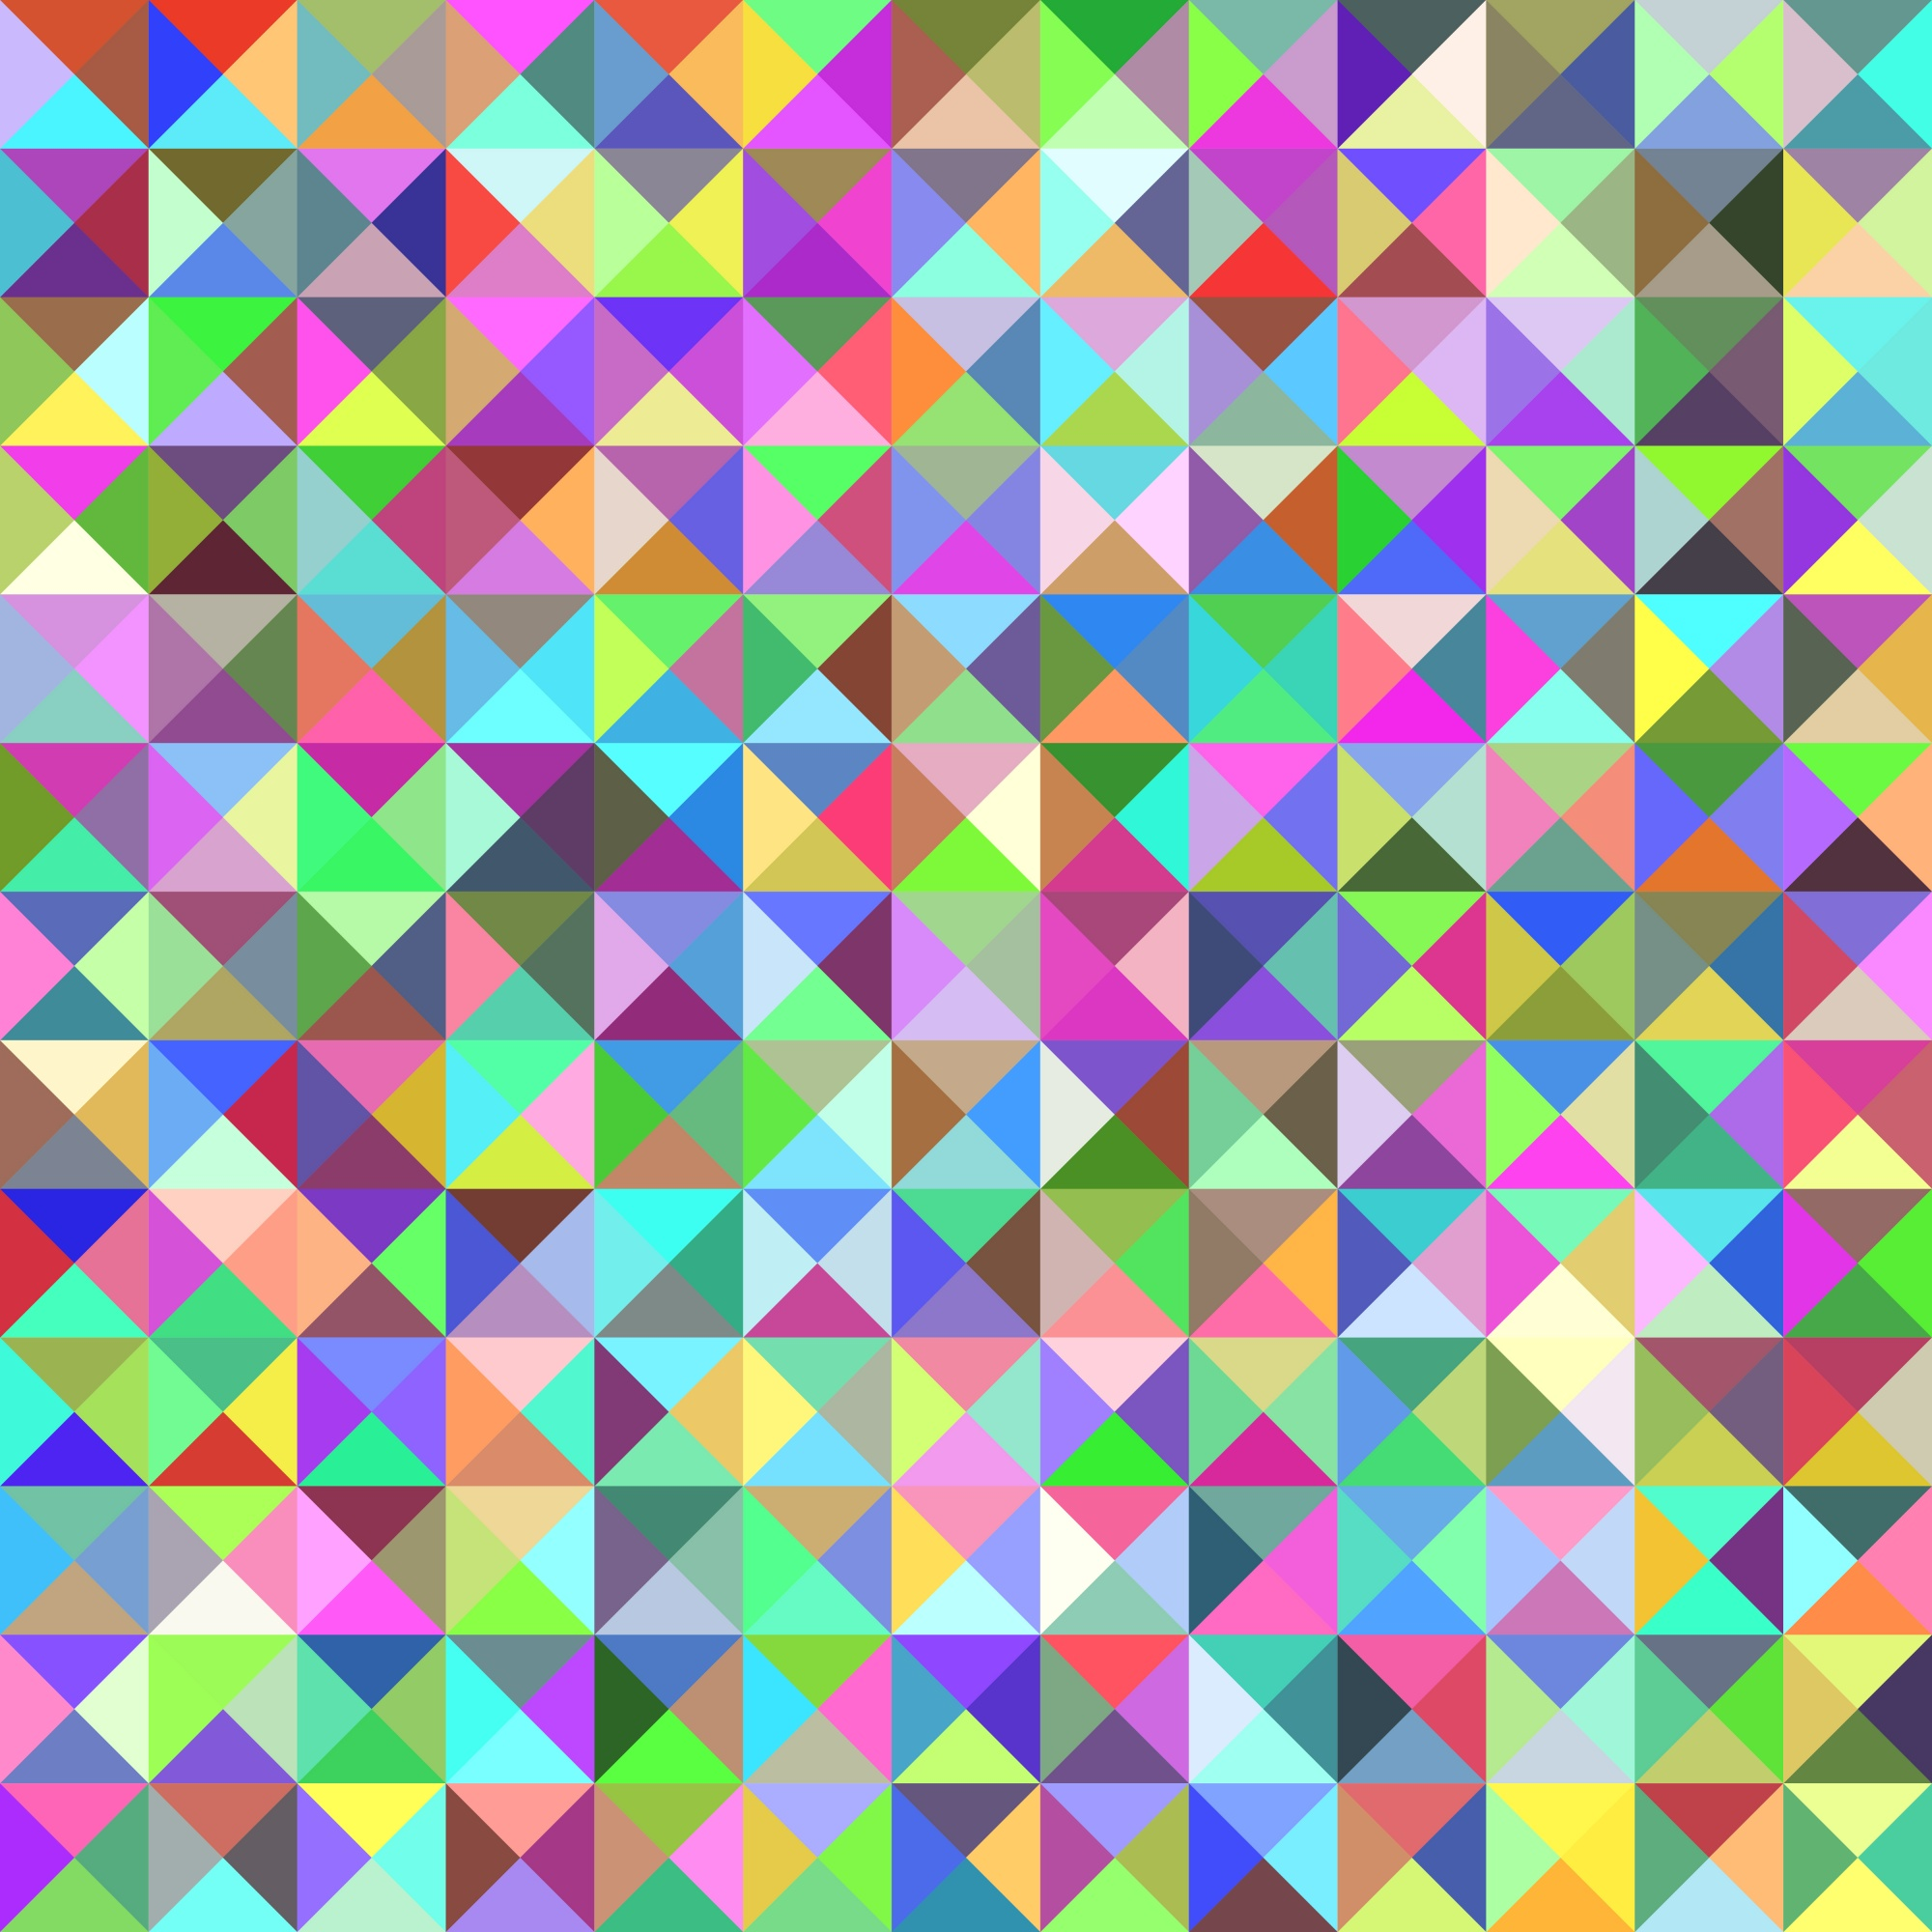 Geometrical triangle tiled pattern background - vector graphic from triangles in colorful tones